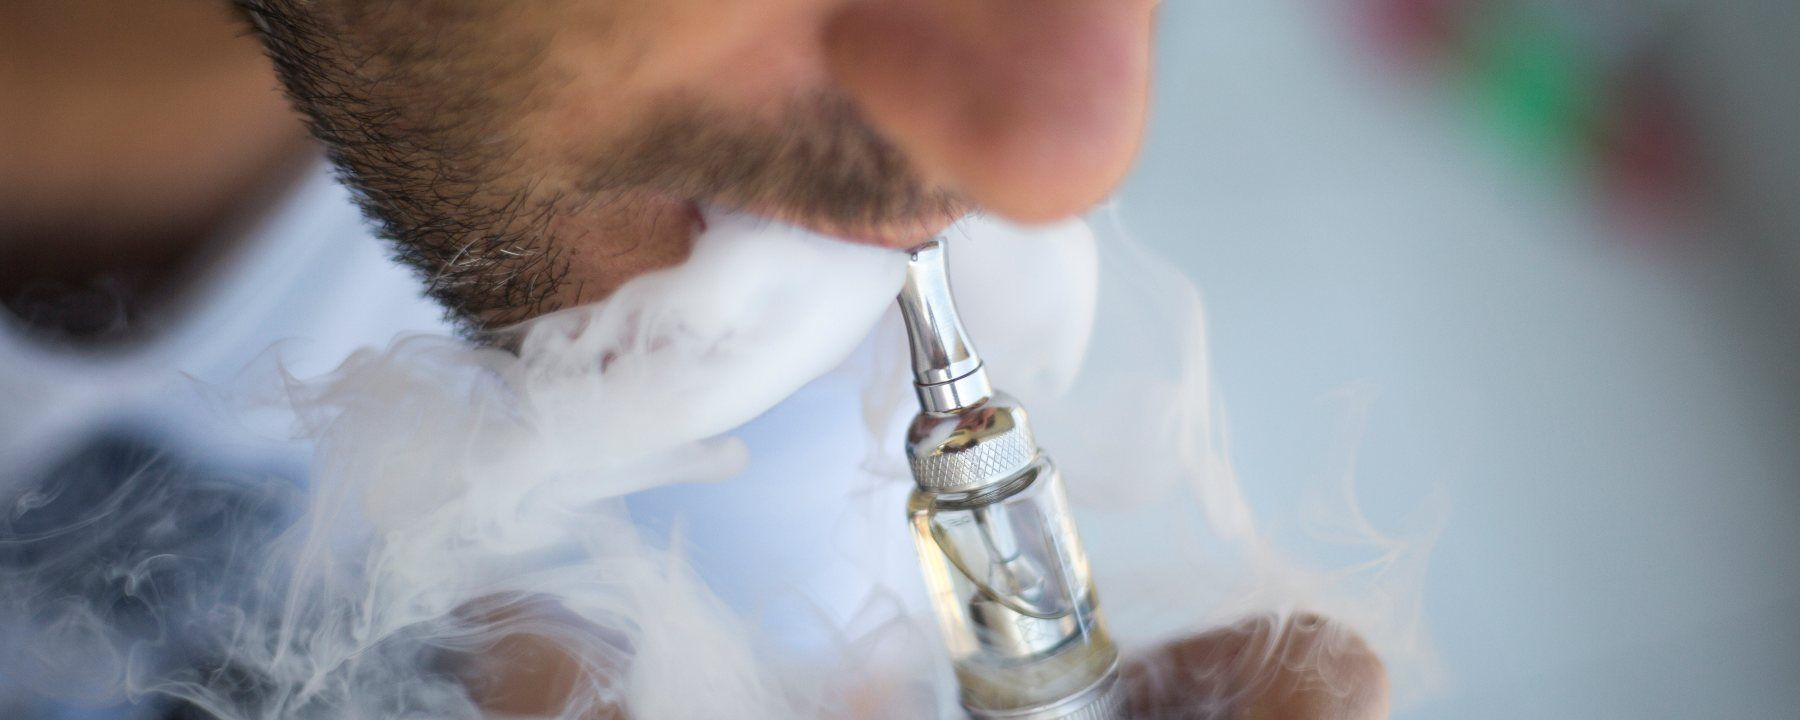 Study: Vaping Causes DNA Damage in Human Cells and Mice